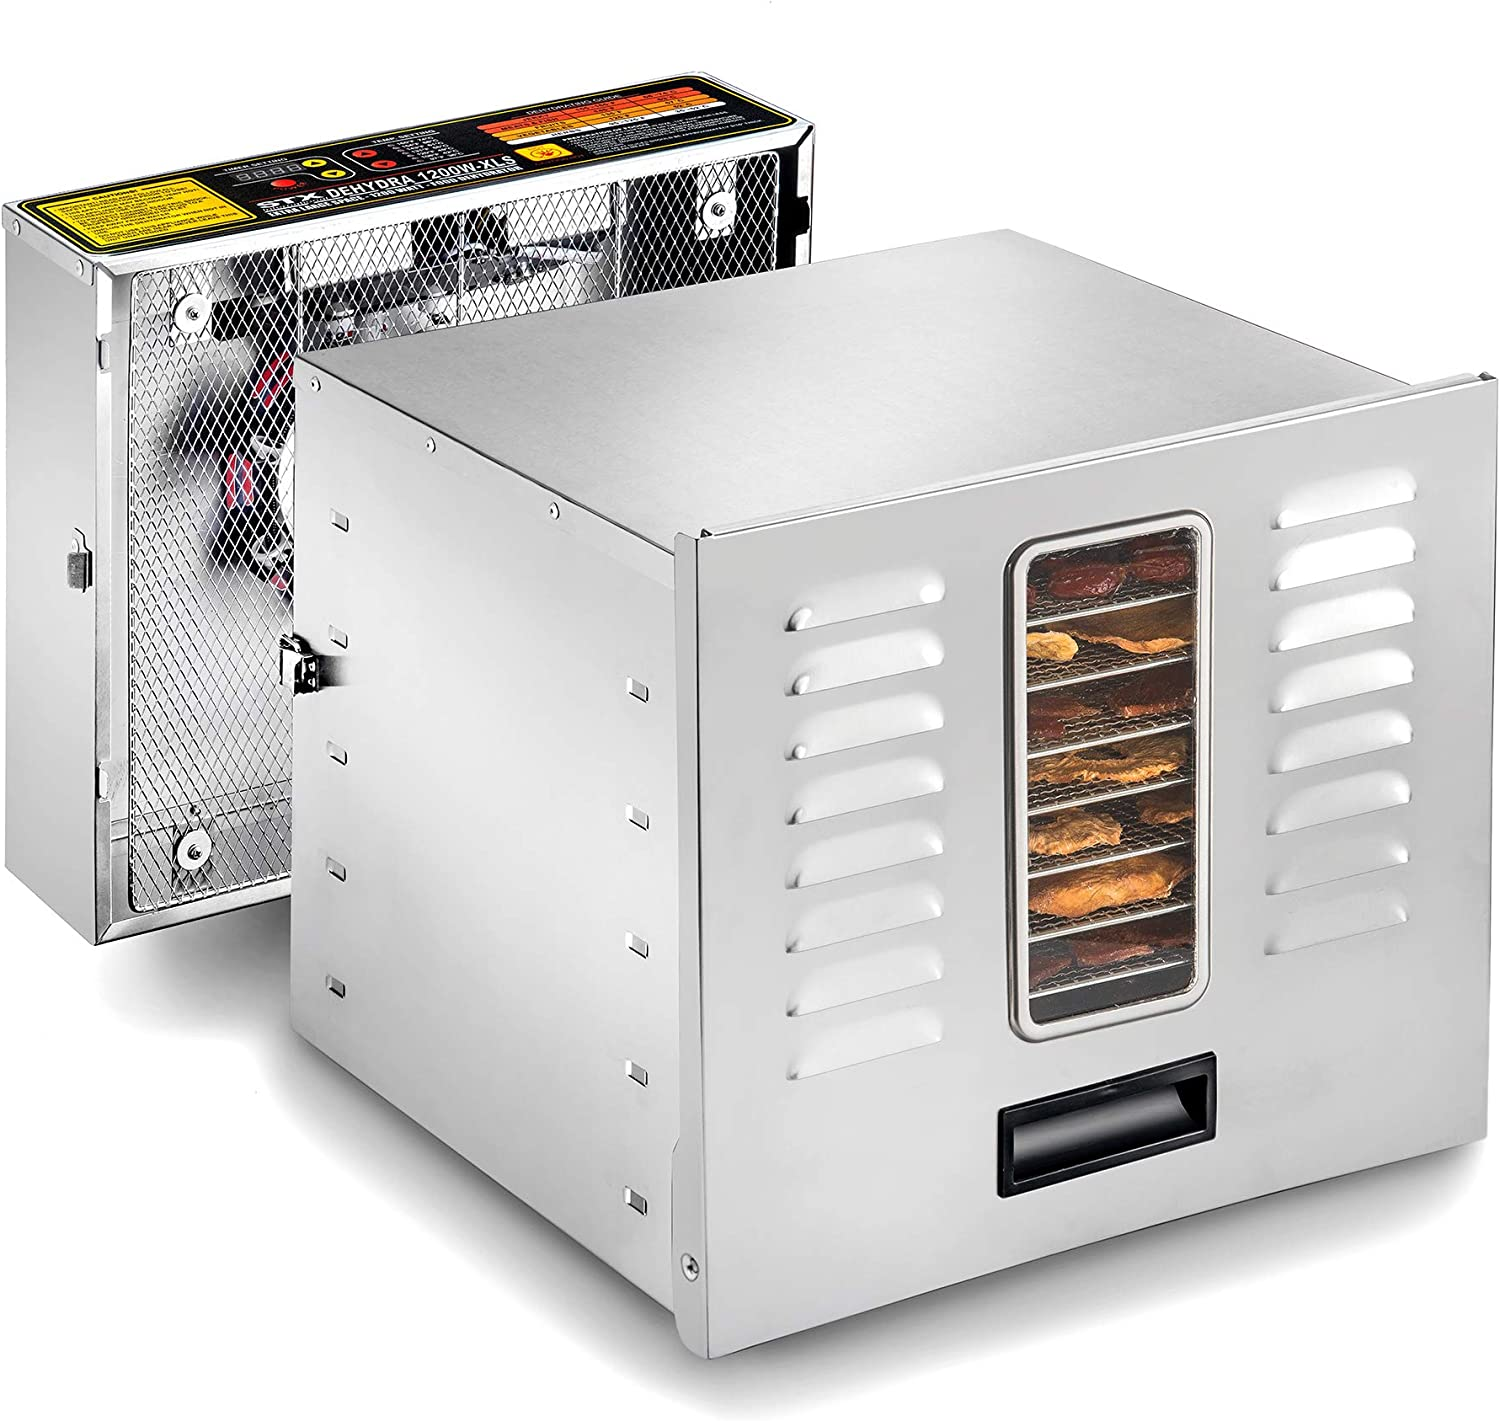 STX-International-STX-DEH-1200W-XLS-Dehydrator-Commercial-Grade-Stainless